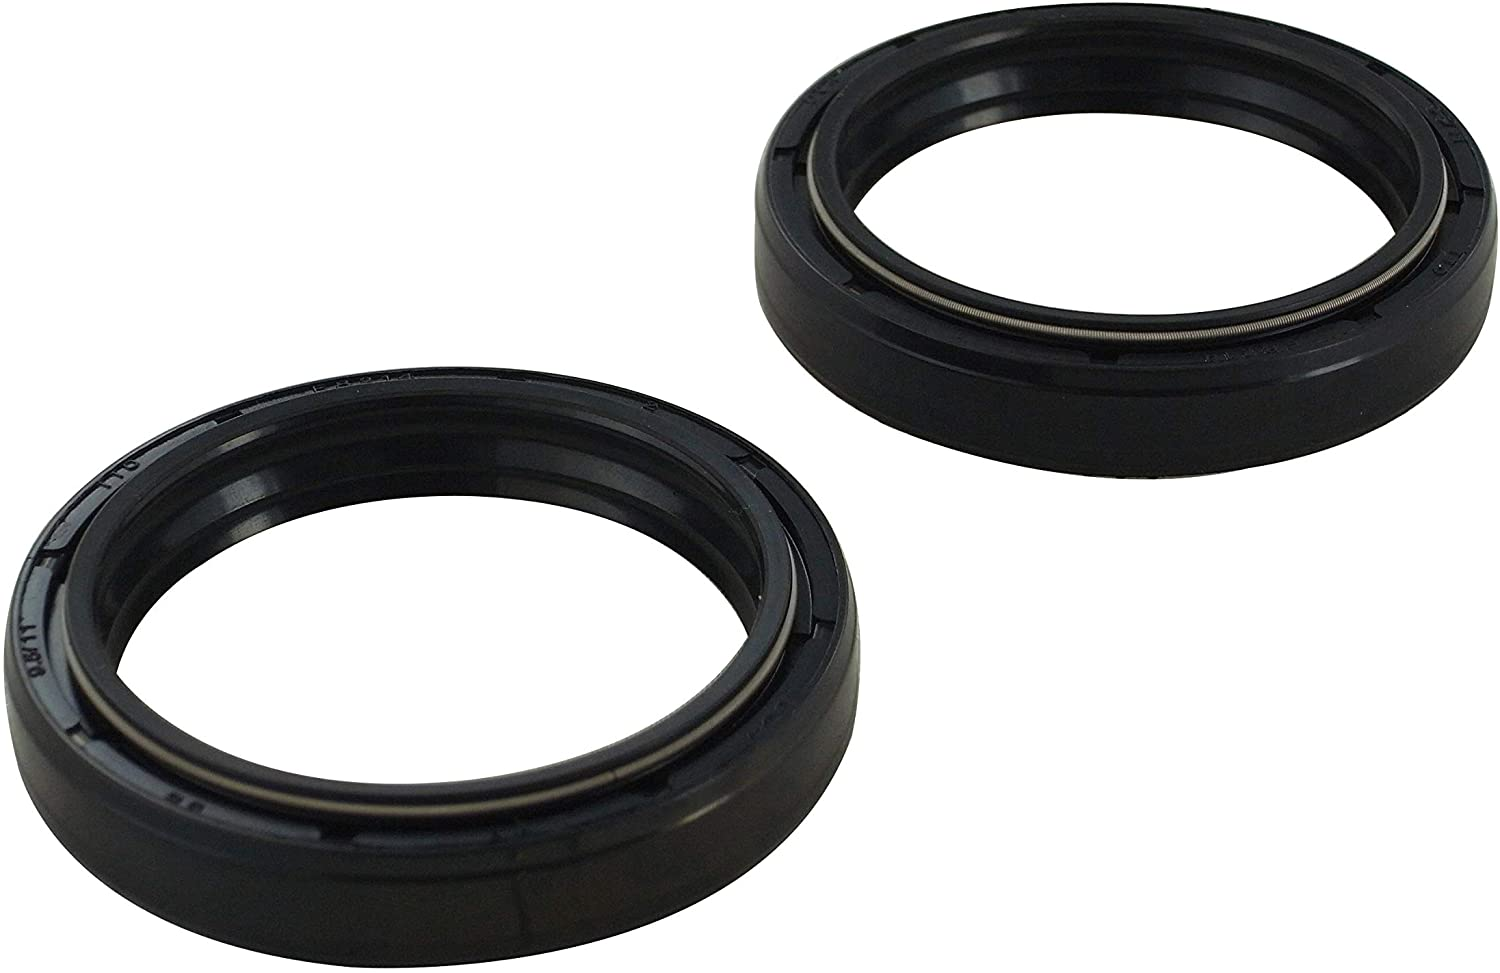 New HQ Powersports Fork Oil Seals Replacement For Yamaha WR250R Dual Sport 2008-2018